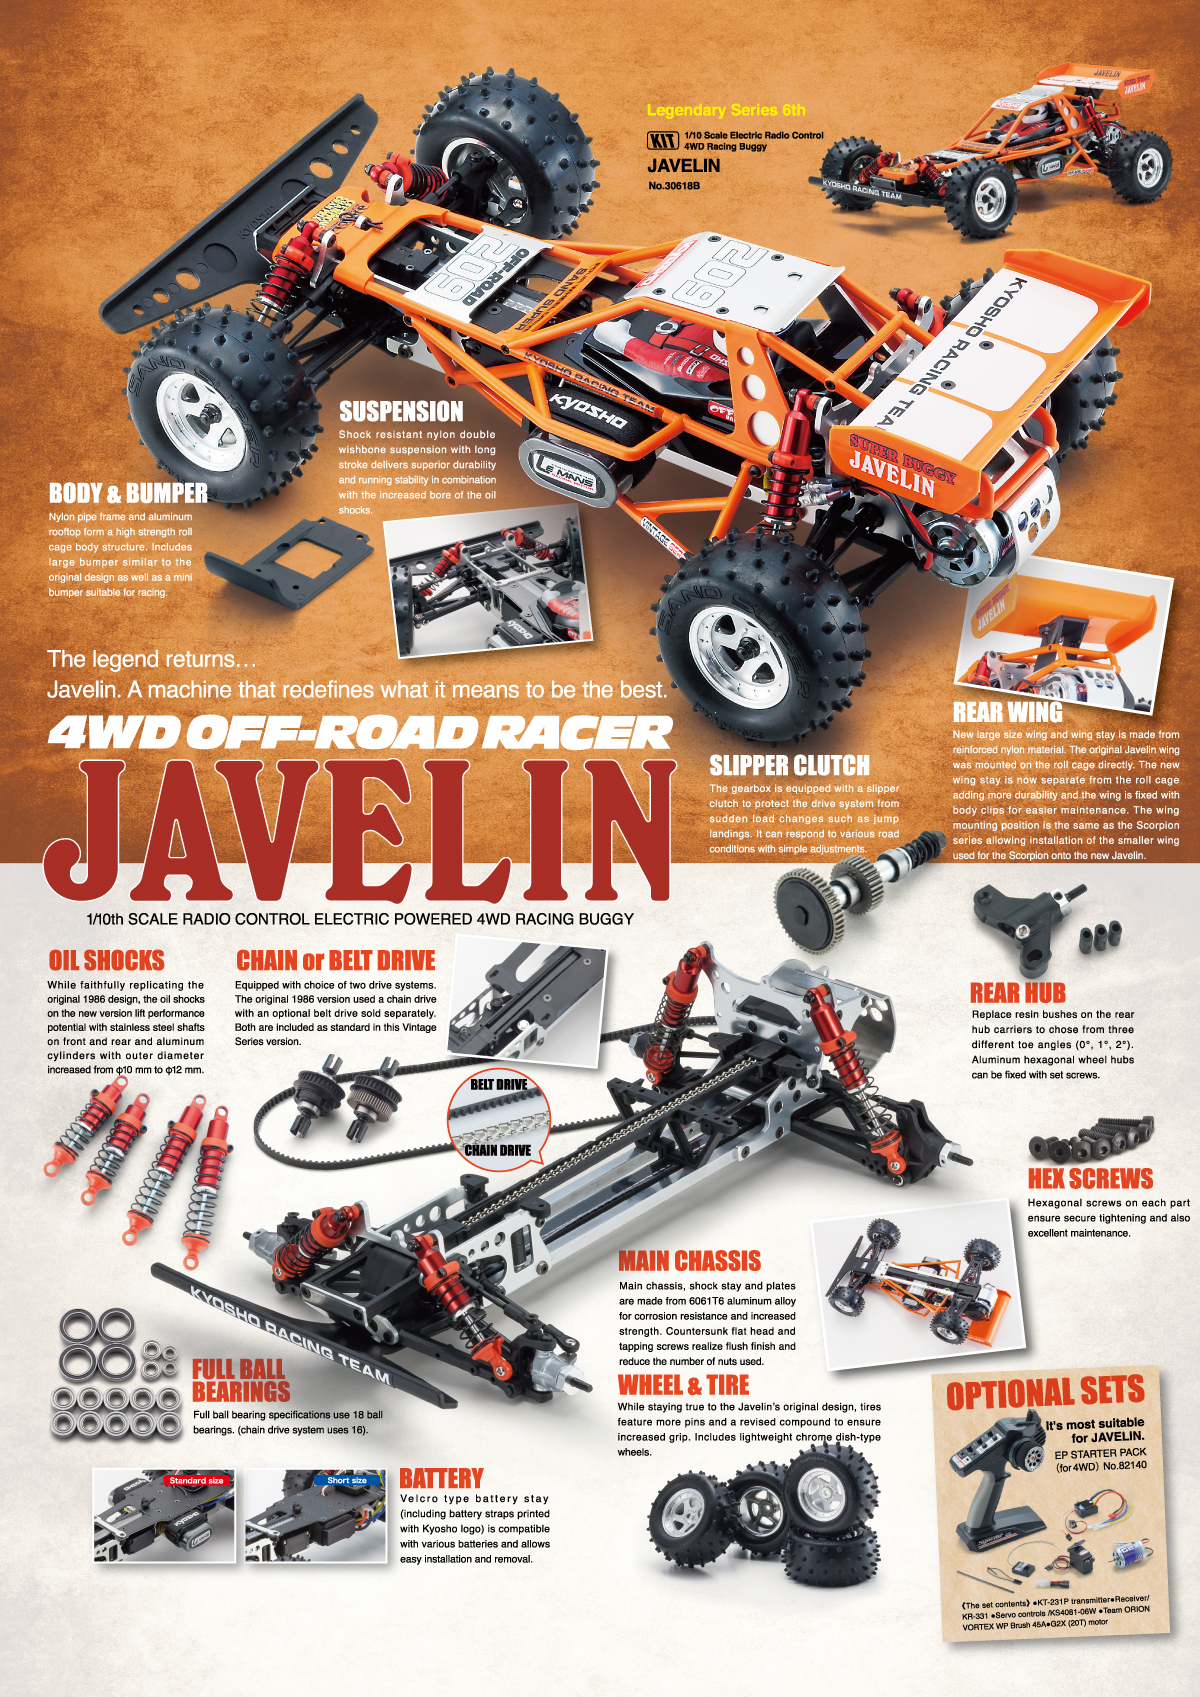 JAVELIN 1/10 EP 4WD Buggy KIT 30618 - KYOSHO RC